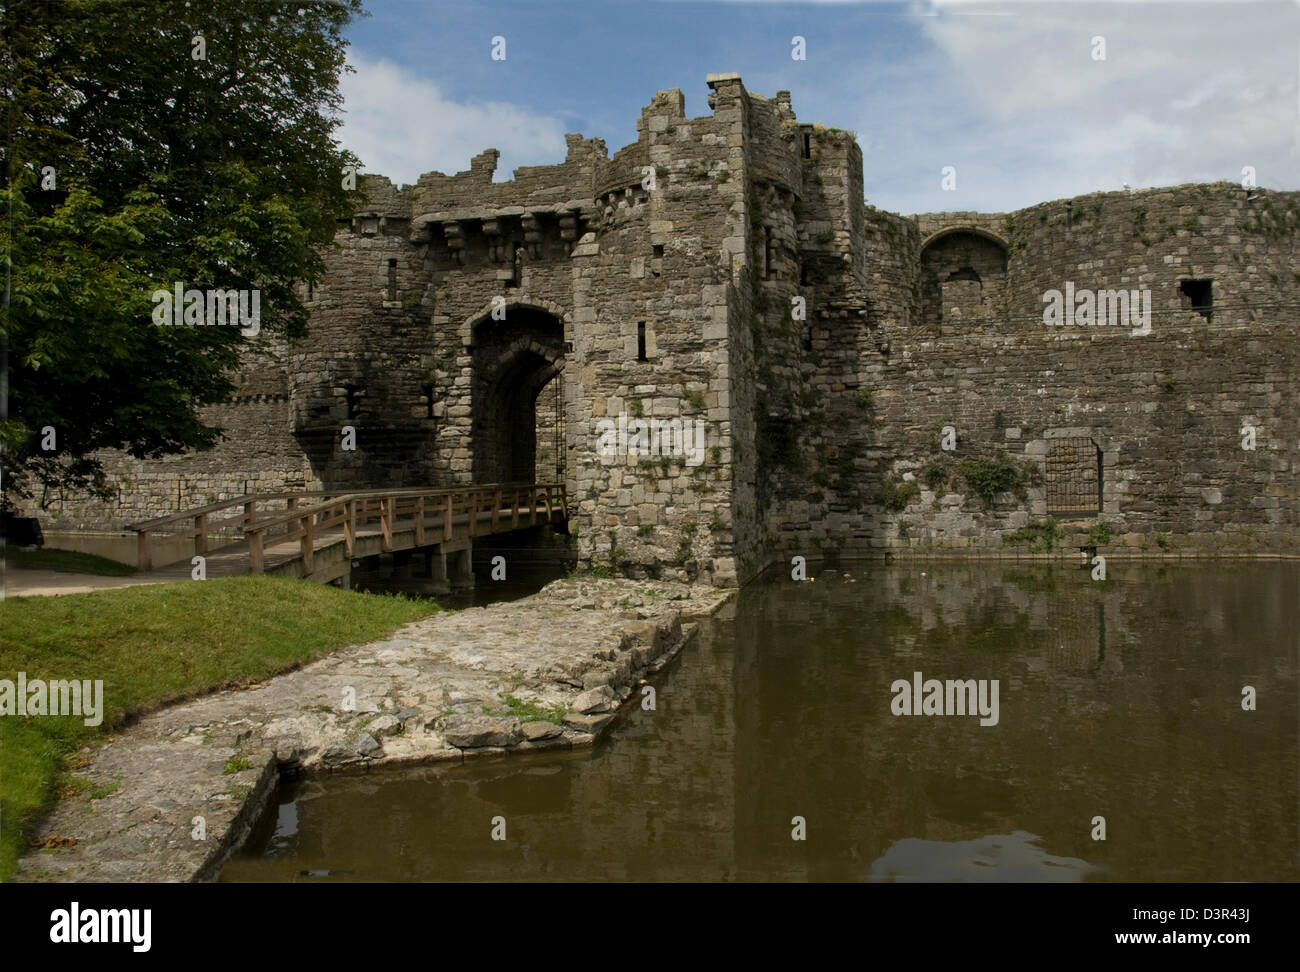 WALES; ANGLESEY; BEAUMARIS CASTLE - Stock Image